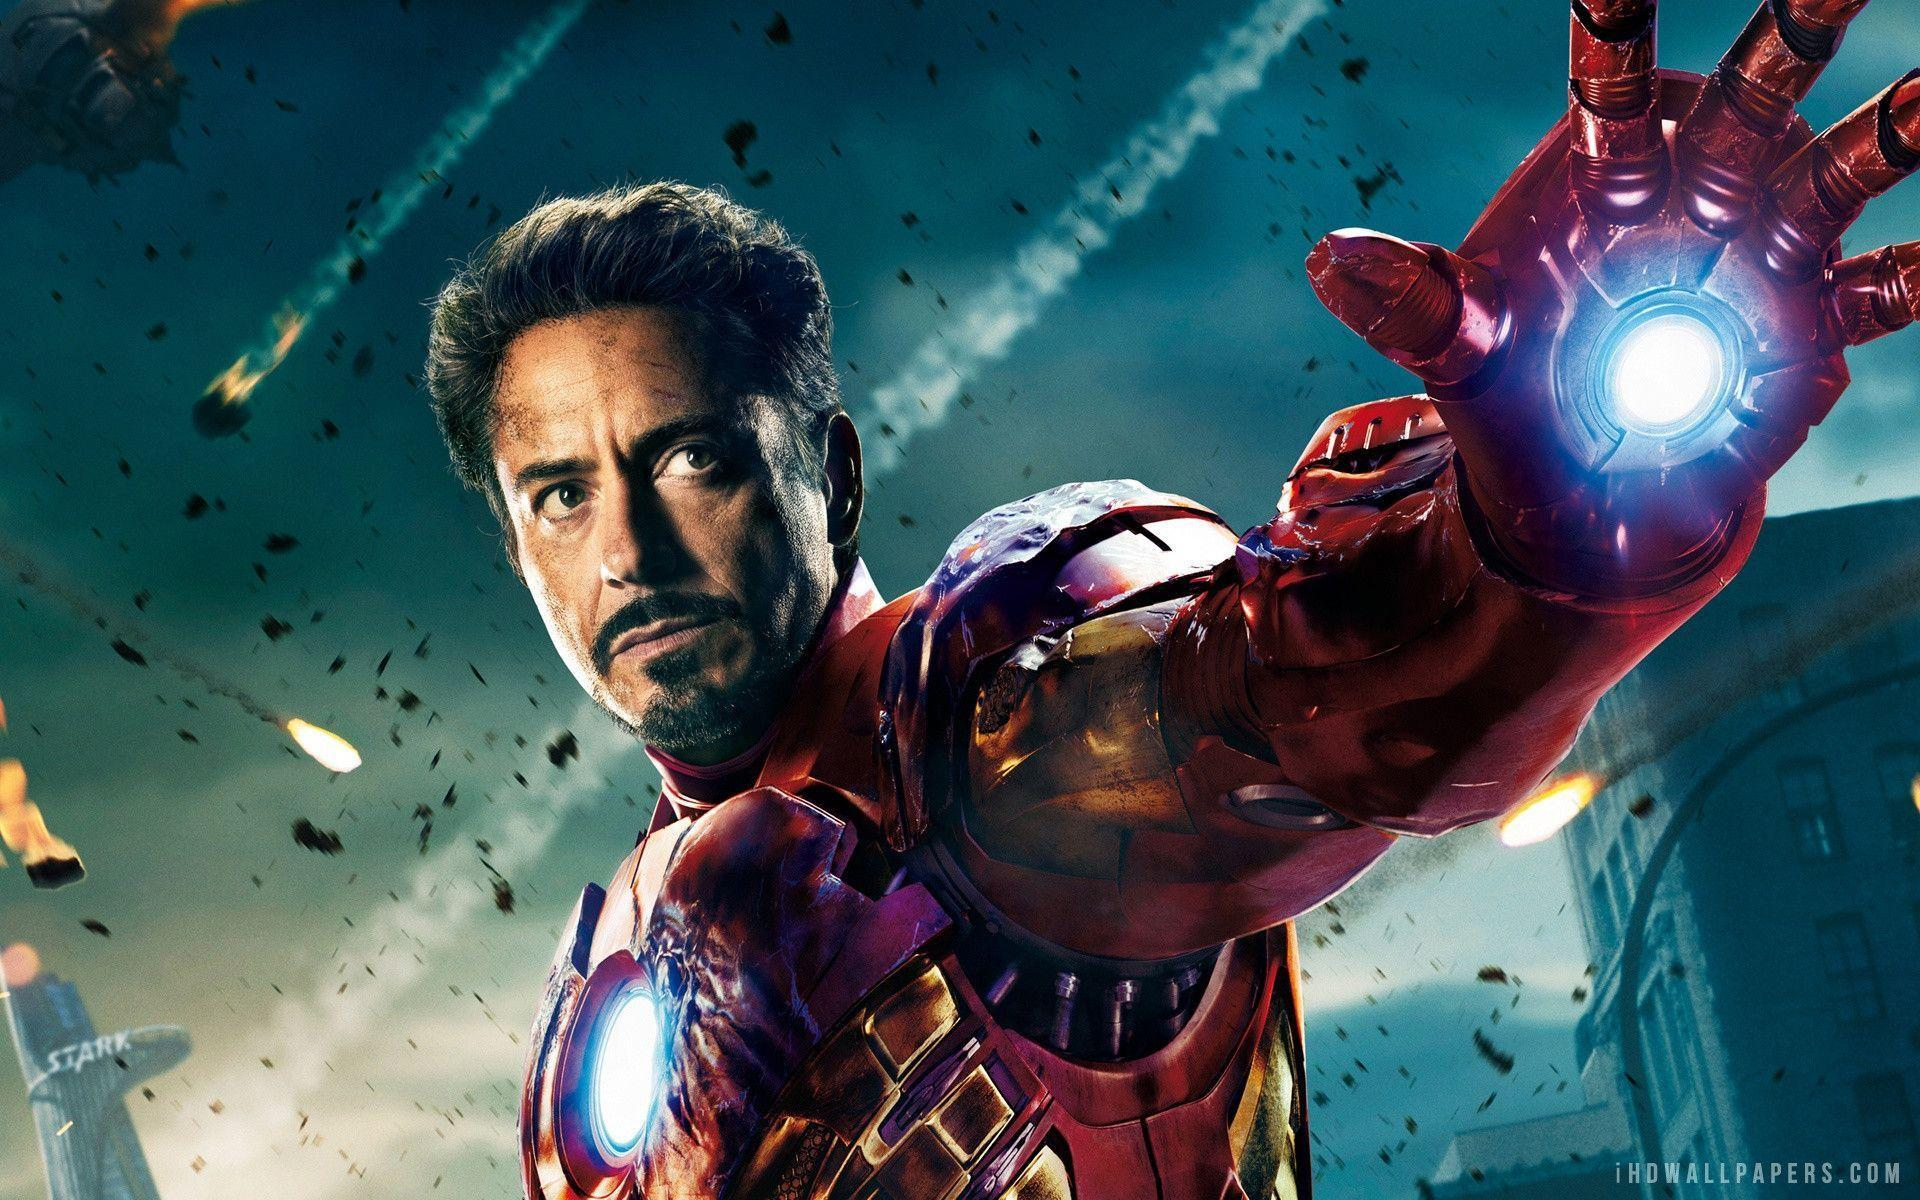 Image For > Iron Man Tony Stark Wallpapers